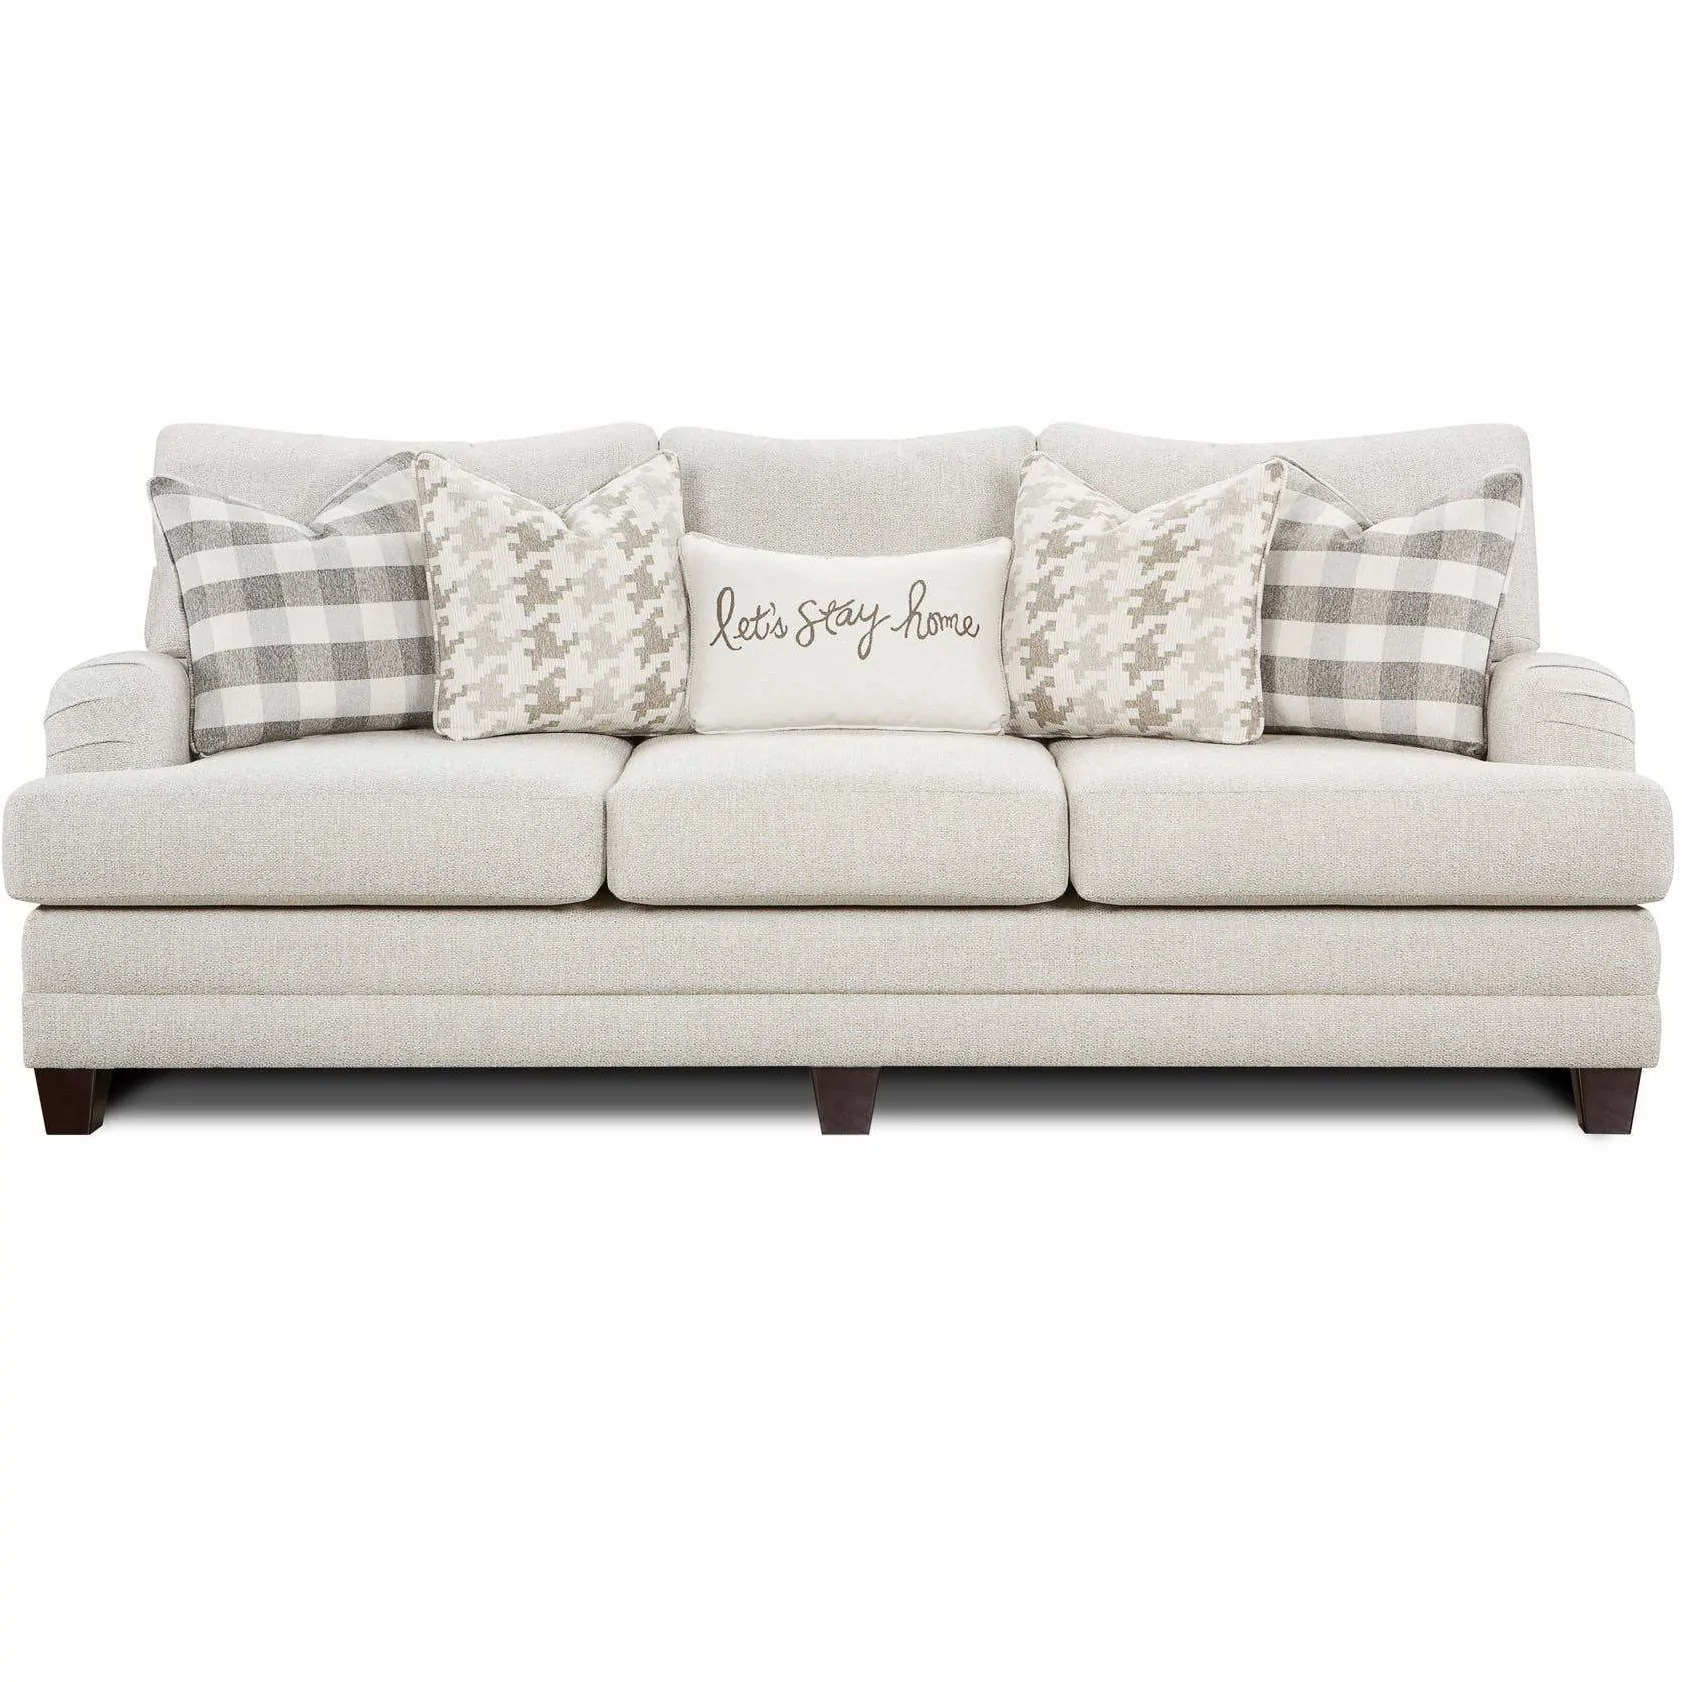 Sofa Kenay Home Sofa